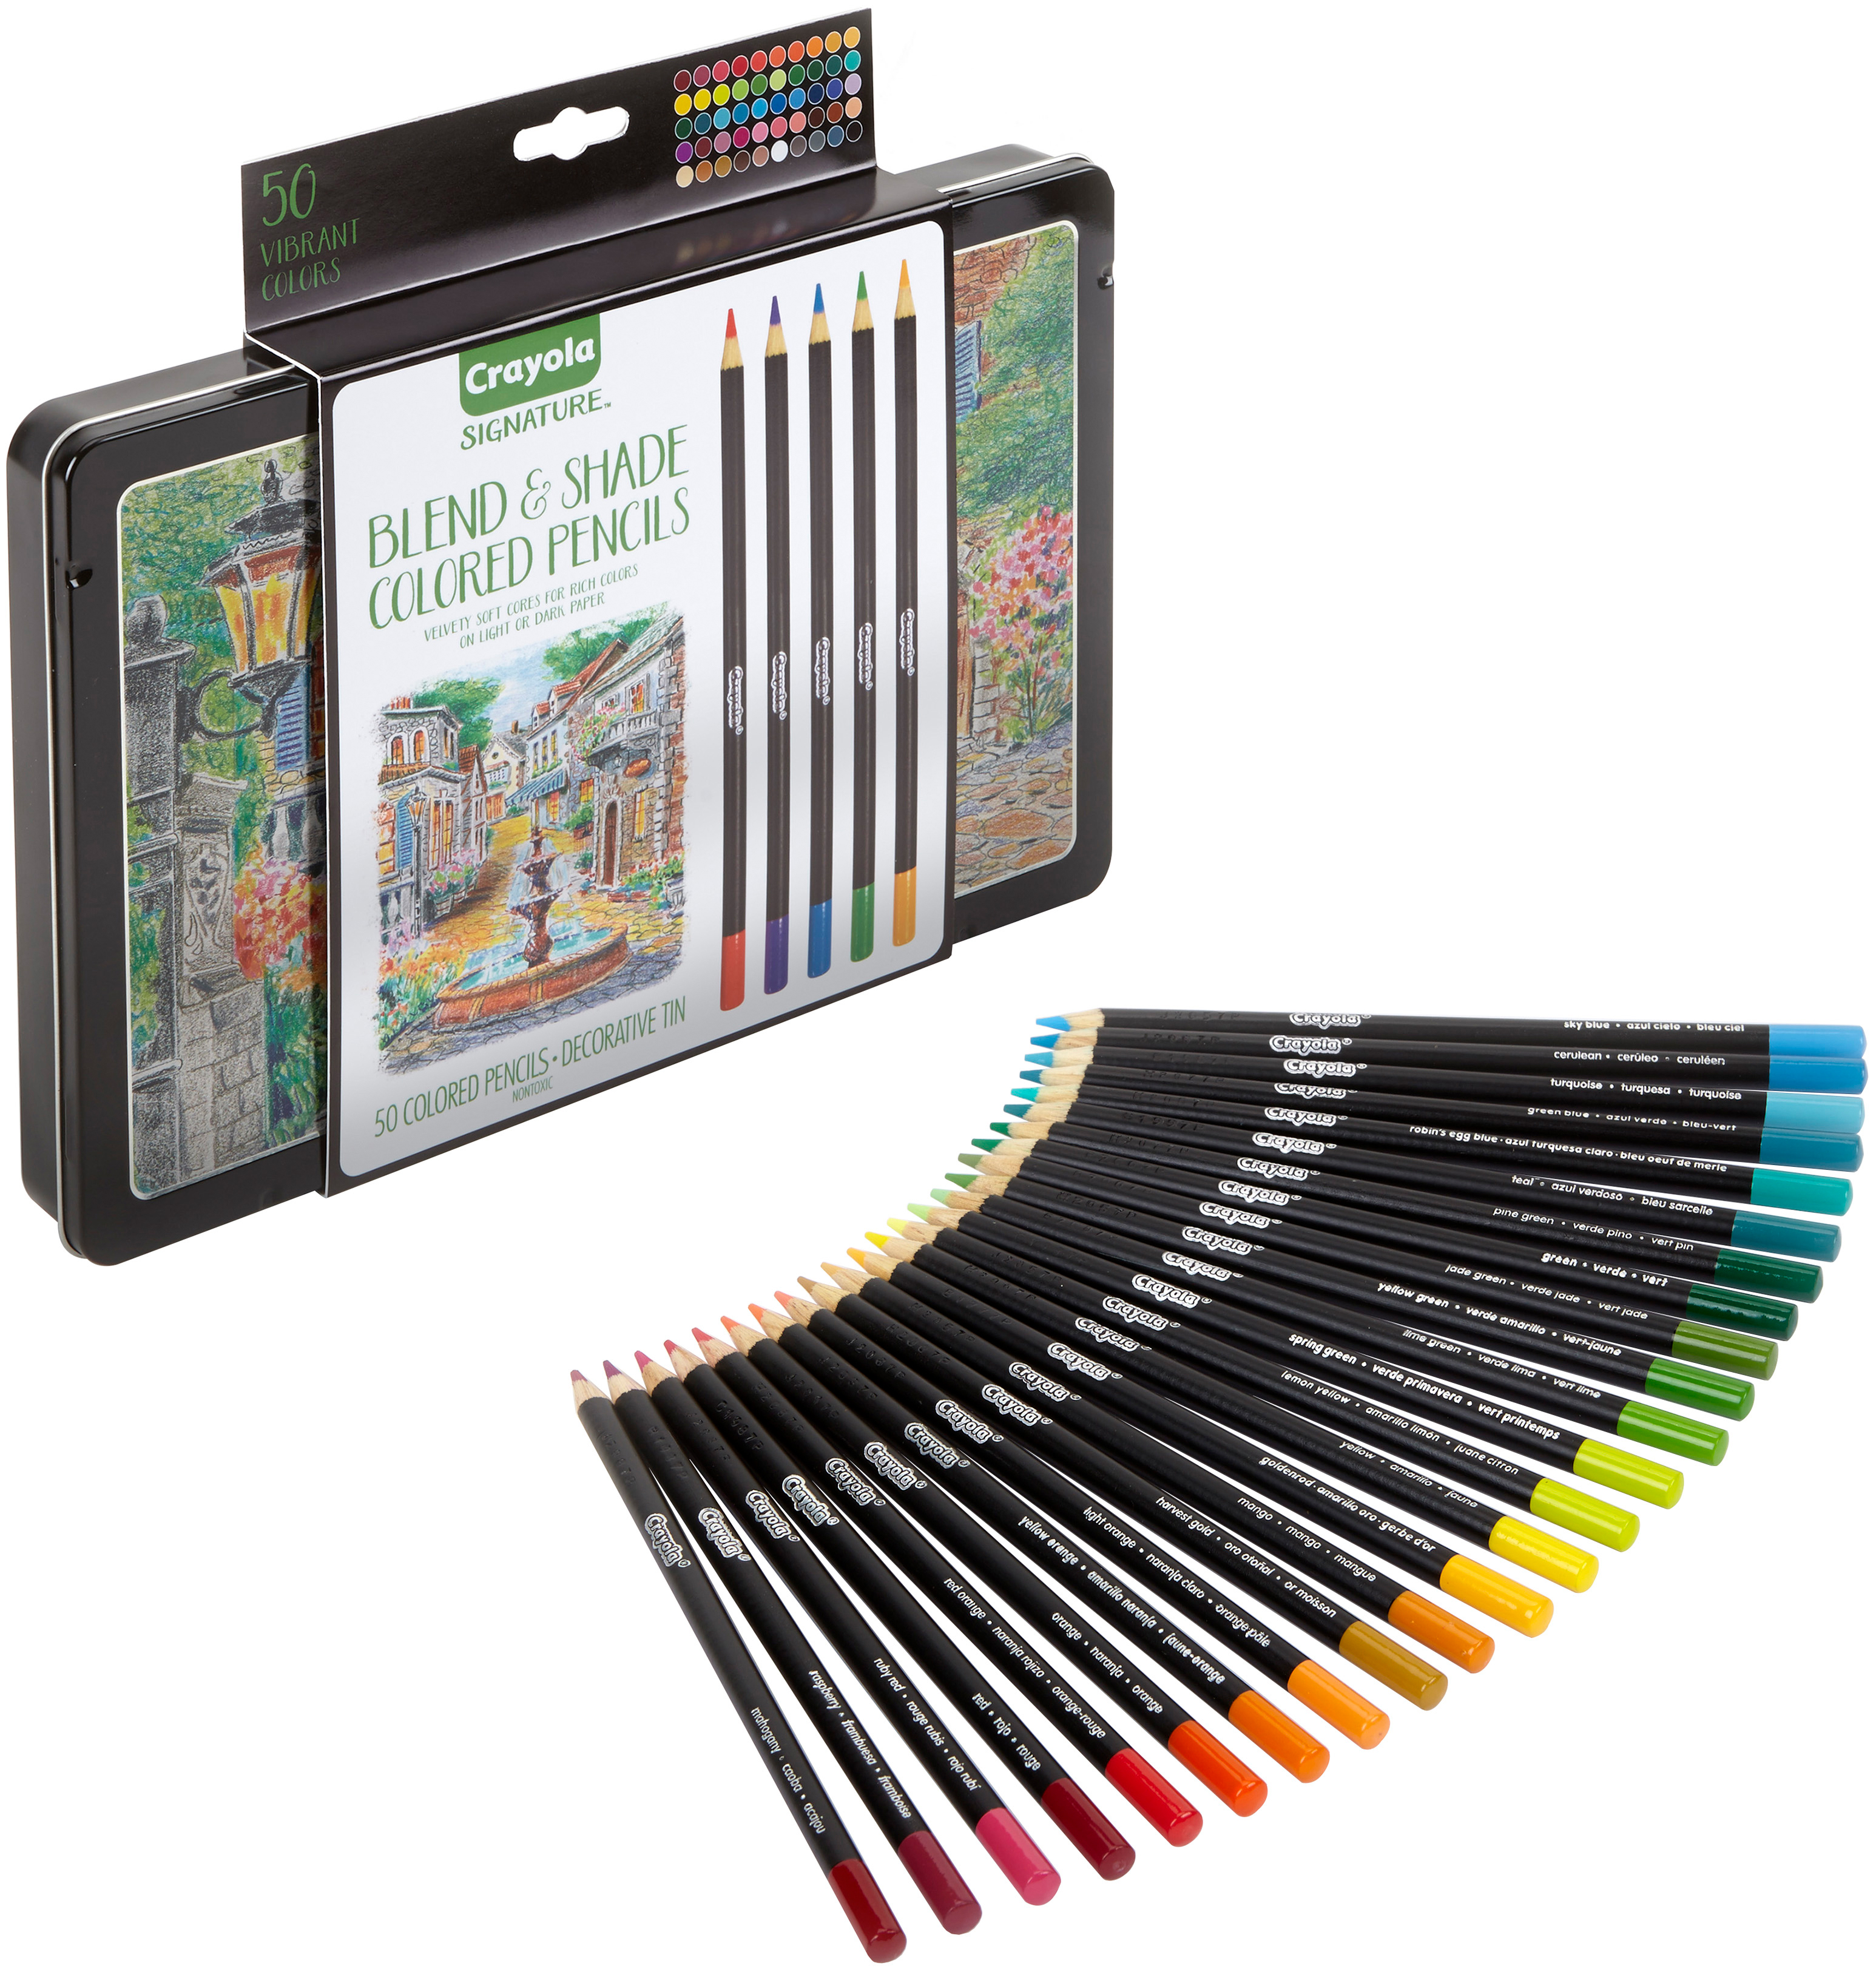 Crayola 50 Piece Signature Blend & Shade Colored Pencils With Tin in Assorted Colors by Crayola